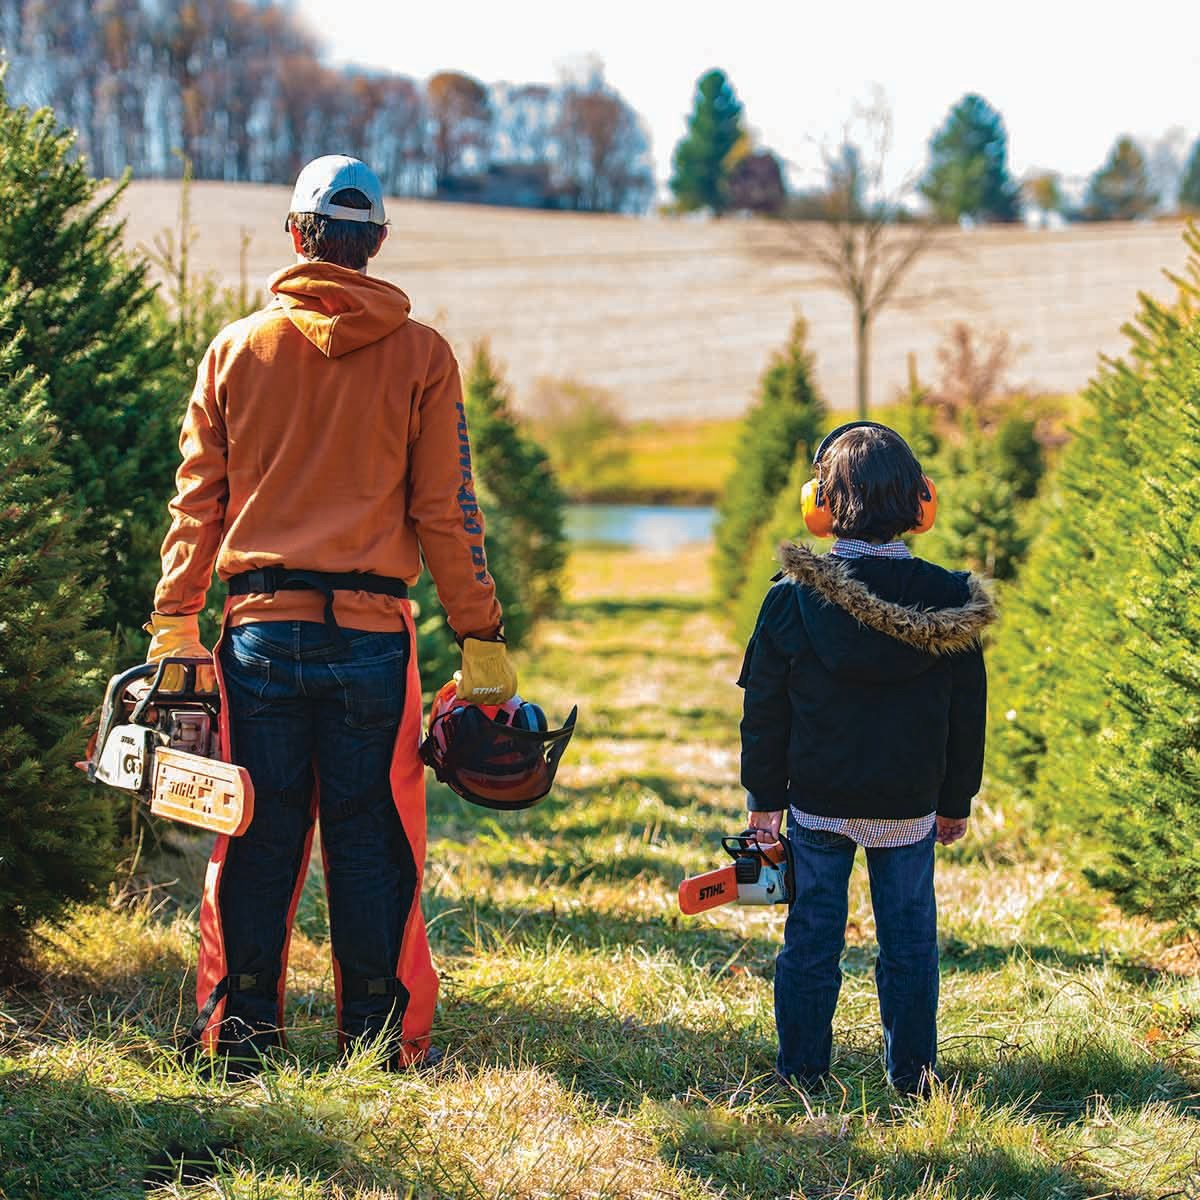 How To Choose A Christmas Tree: Tips From Expert    Arborist Mark Chisholm